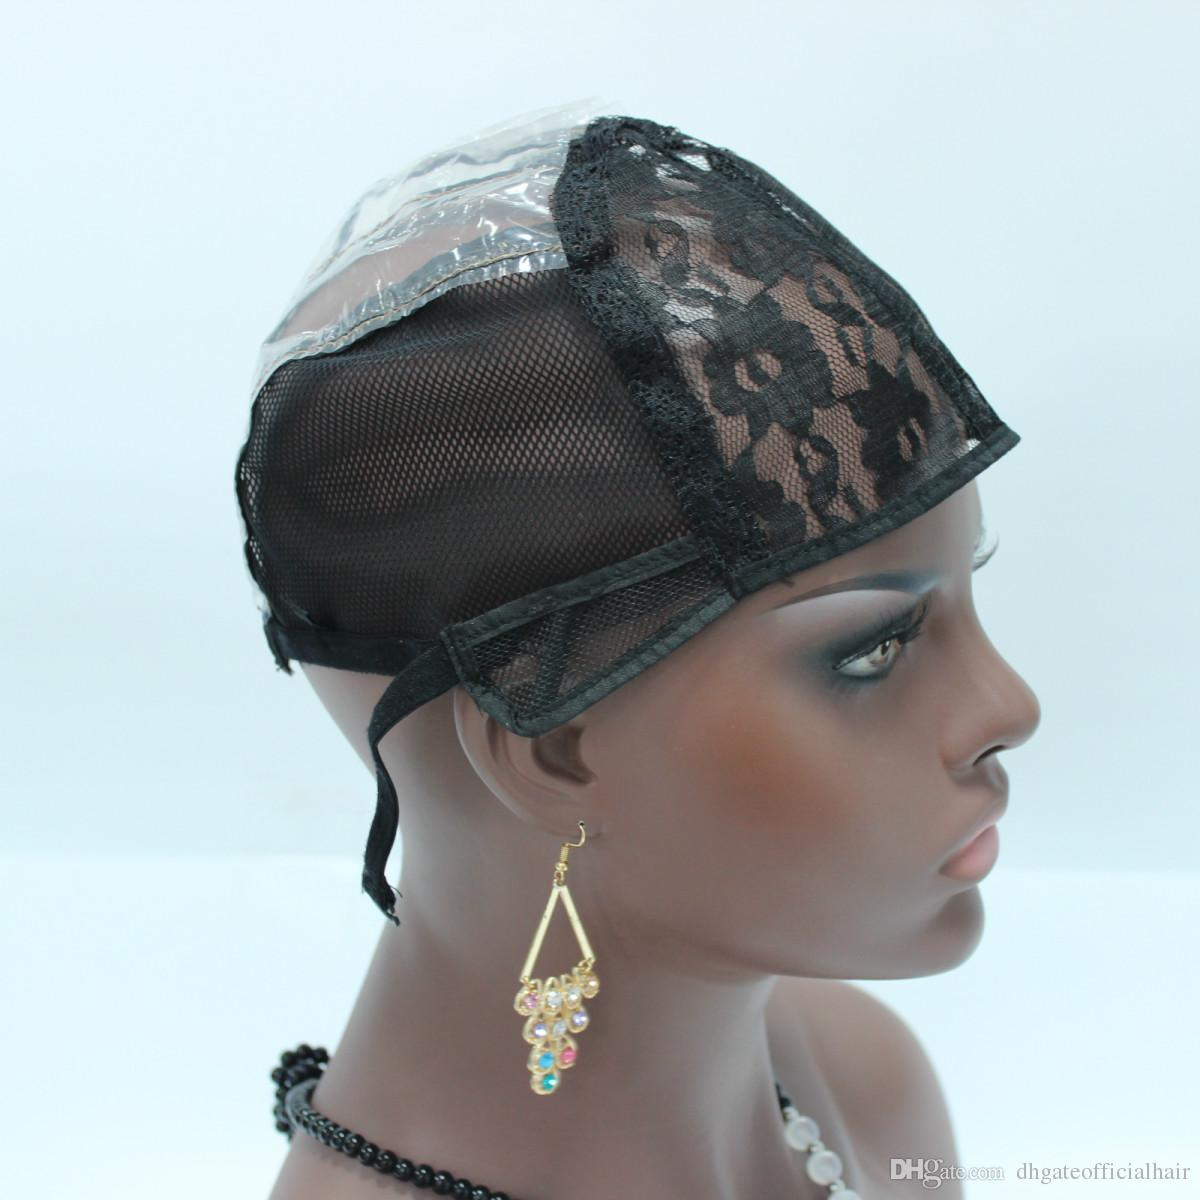 Lace Cap Wigs For Make Wig Net Wig Caps In Stock Wig Caps Human Hair Black  Women Lace Cap Wigs Lace Caps From Dhgateofficialhair 290026dbf5